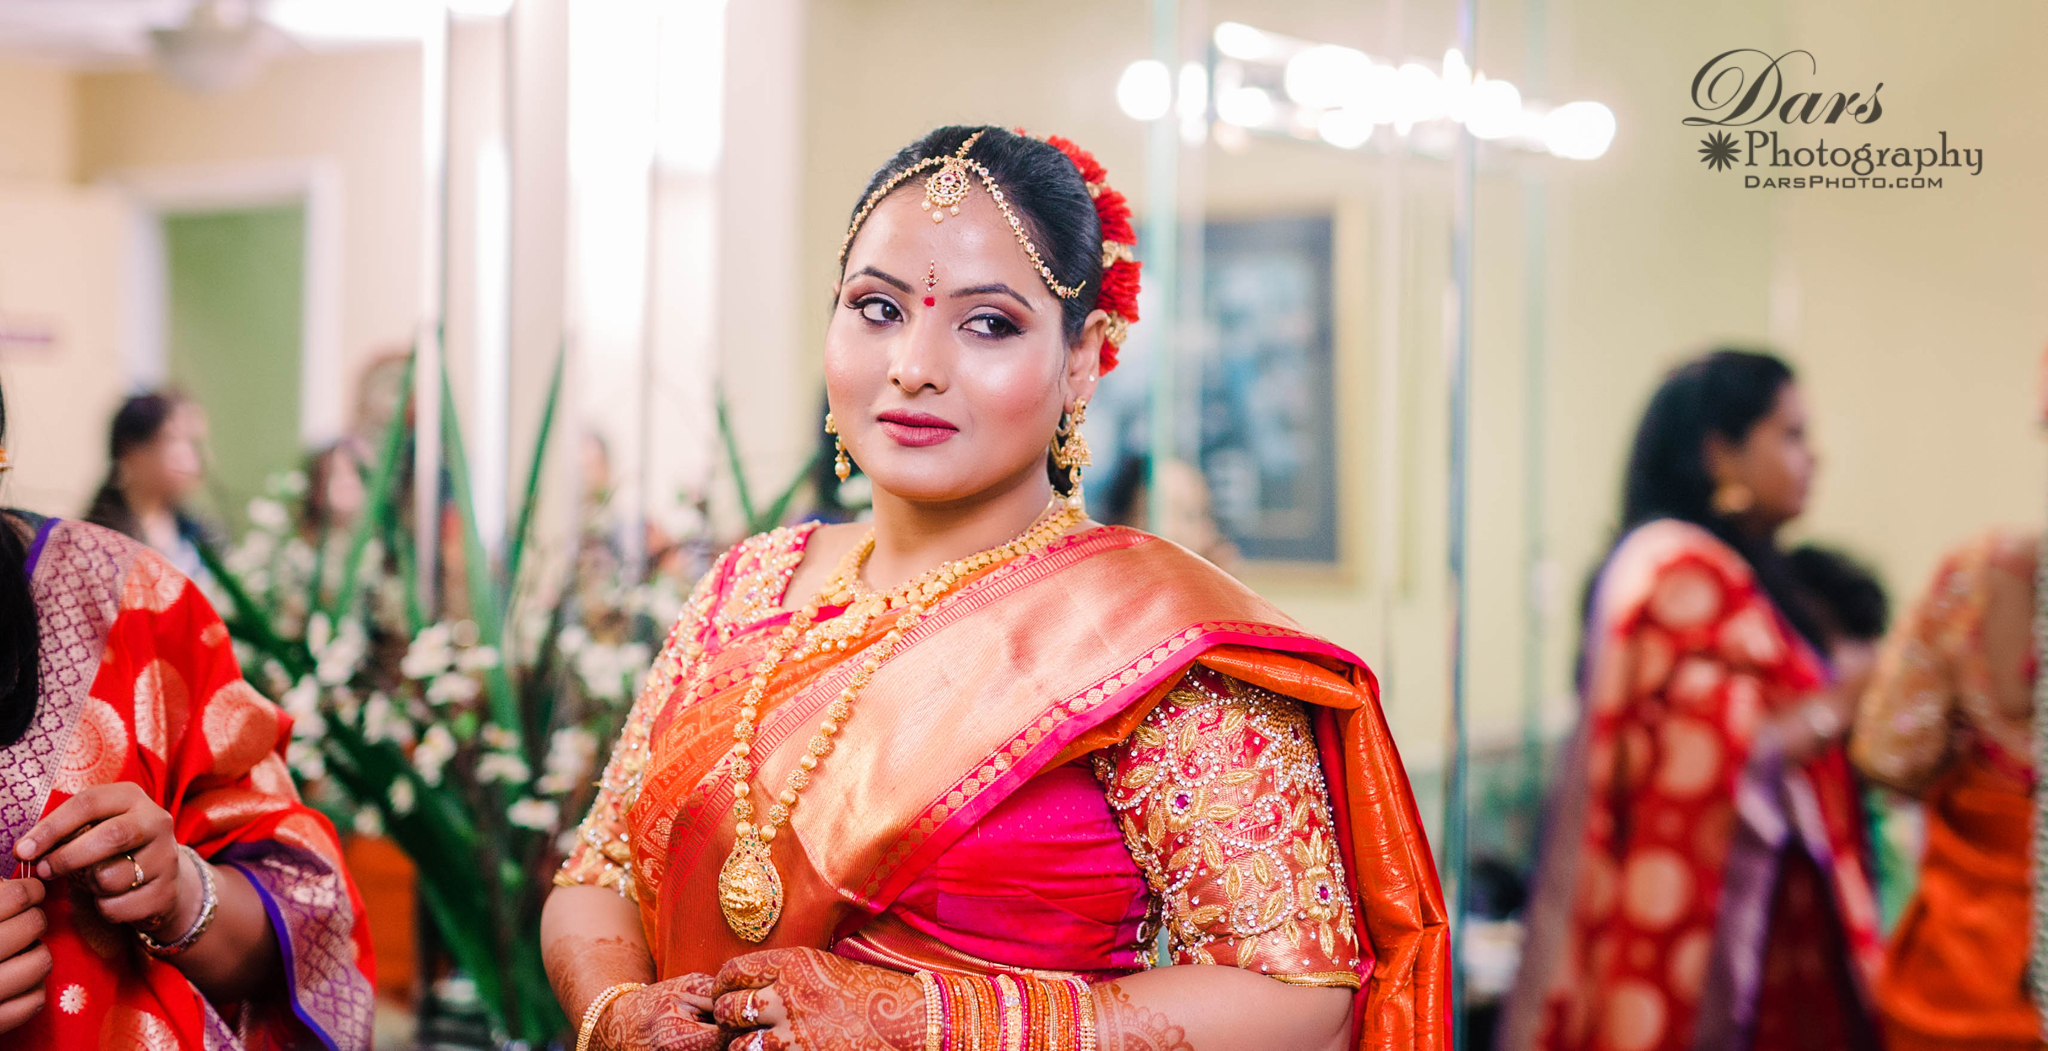 Chicago American And Indian Wedding Photographer DARS Photography 28